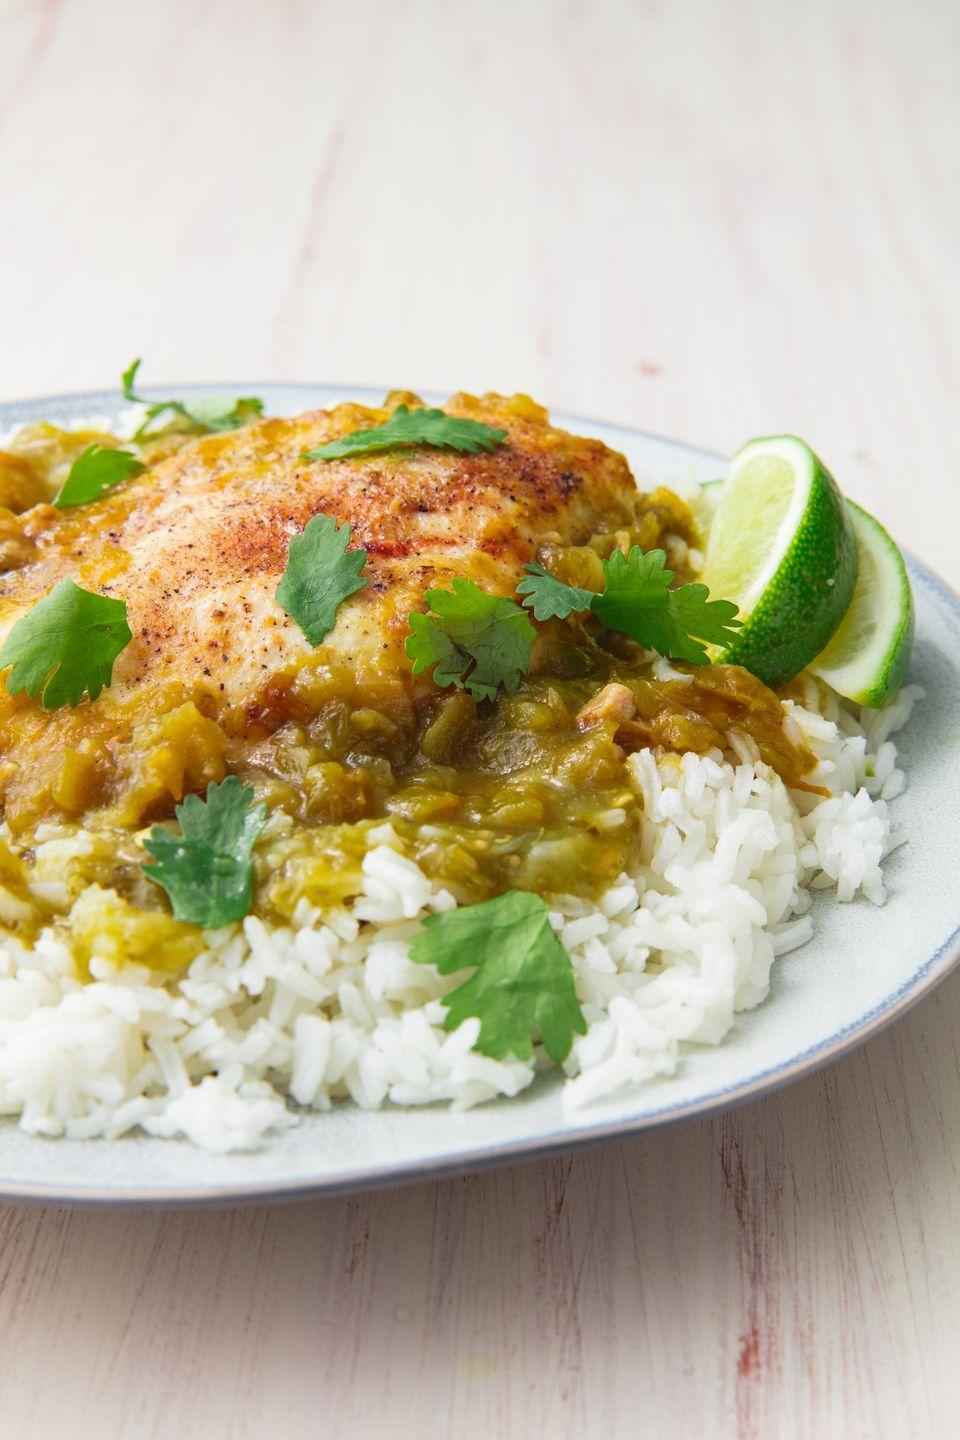 """<p>This flavorful dish is soo easy to make. </p><p>Get the recipe from <a href=""""https://www.delish.com/cooking/recipe-ideas/recipes/a50766/baked-salsa-verde-chicken-recipe/"""" rel=""""nofollow noopener"""" target=""""_blank"""" data-ylk=""""slk:Delish"""" class=""""link rapid-noclick-resp"""">Delish</a>.</p>"""